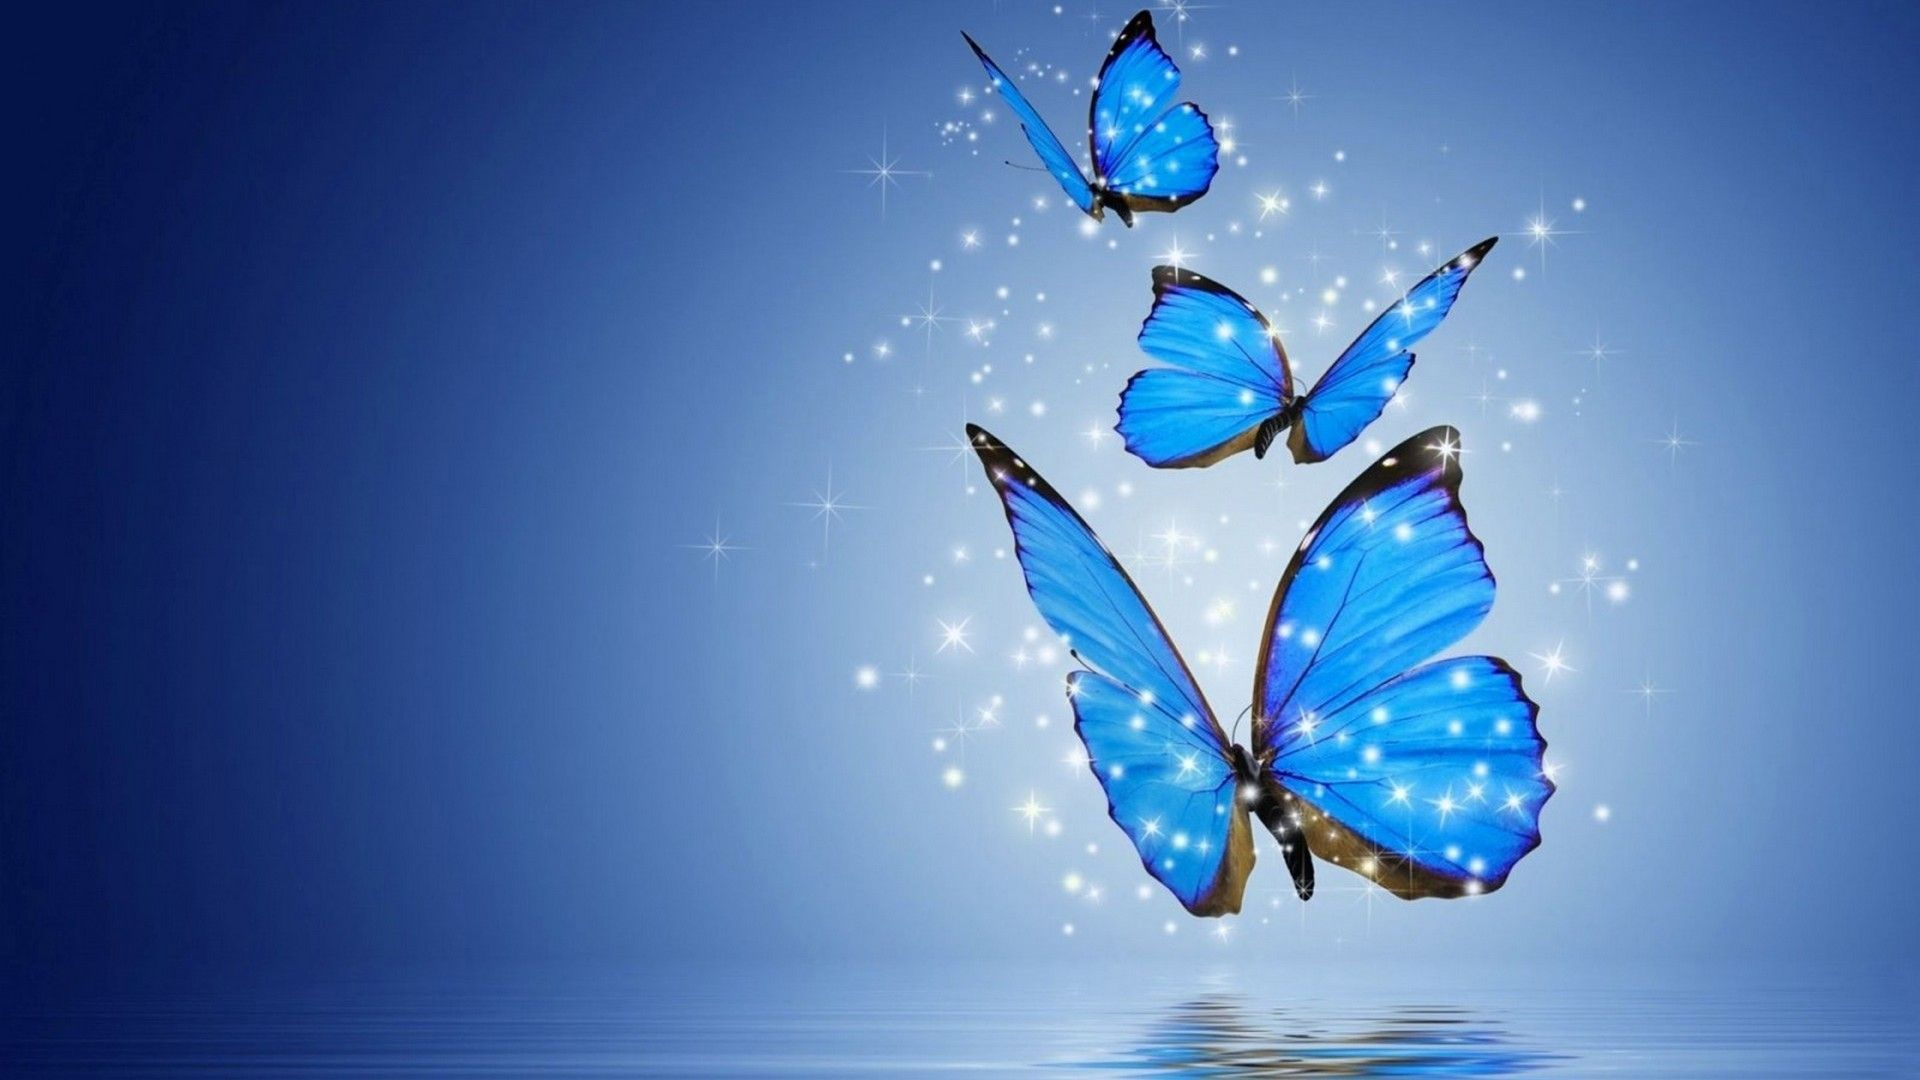 Computer Wallpapers Blue Butterfly Butterfly Wallpaper Blue Butterfly Wallpaper Beautiful Butterfly Images